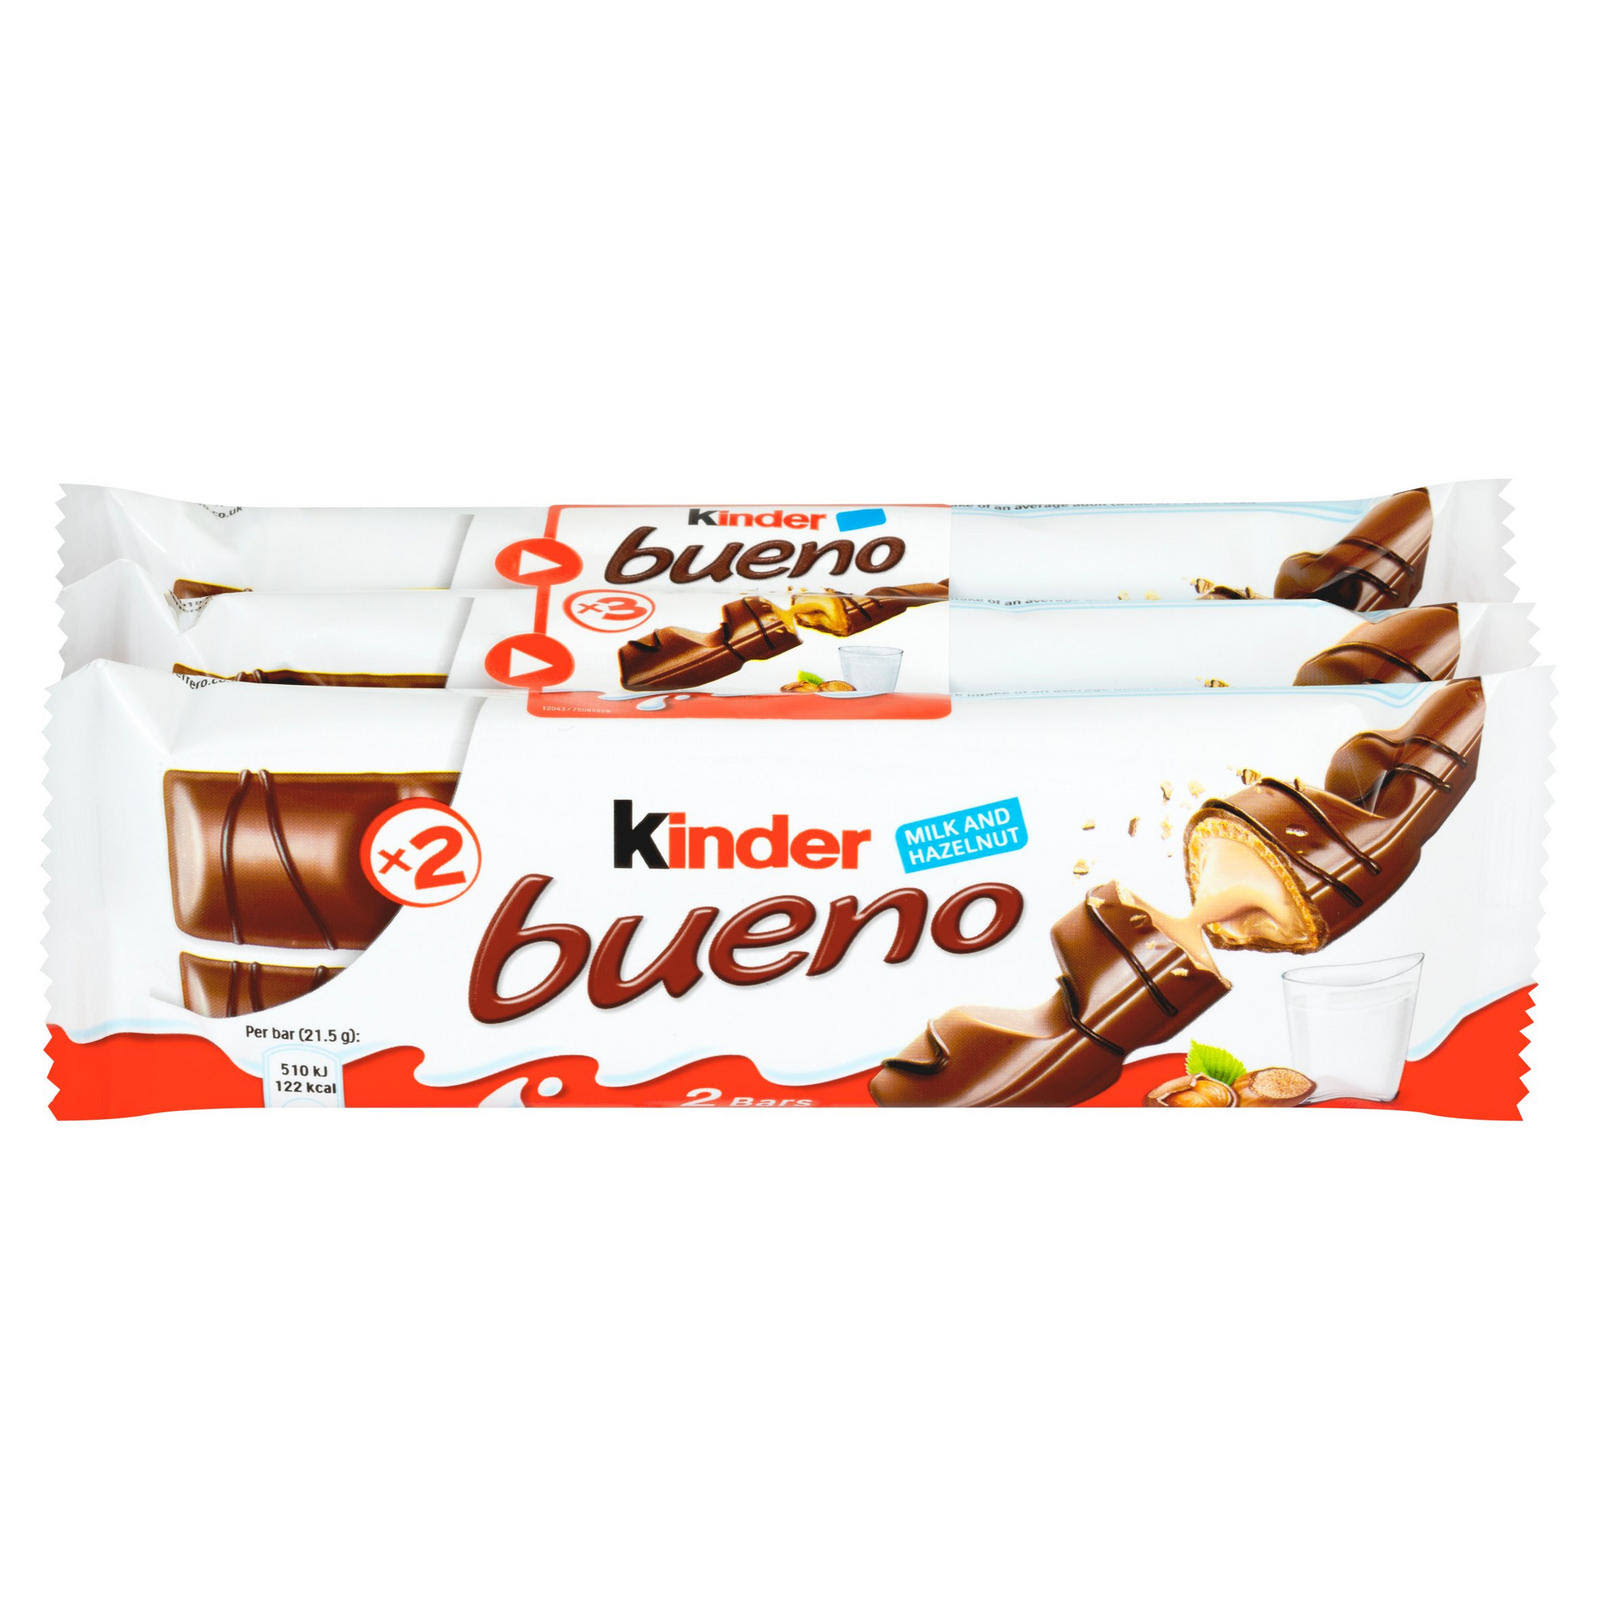 Kinder Bueno Milk Chocolate and Hazelnuts Multipack Chocolate Bars - 3 x 43g, 129g